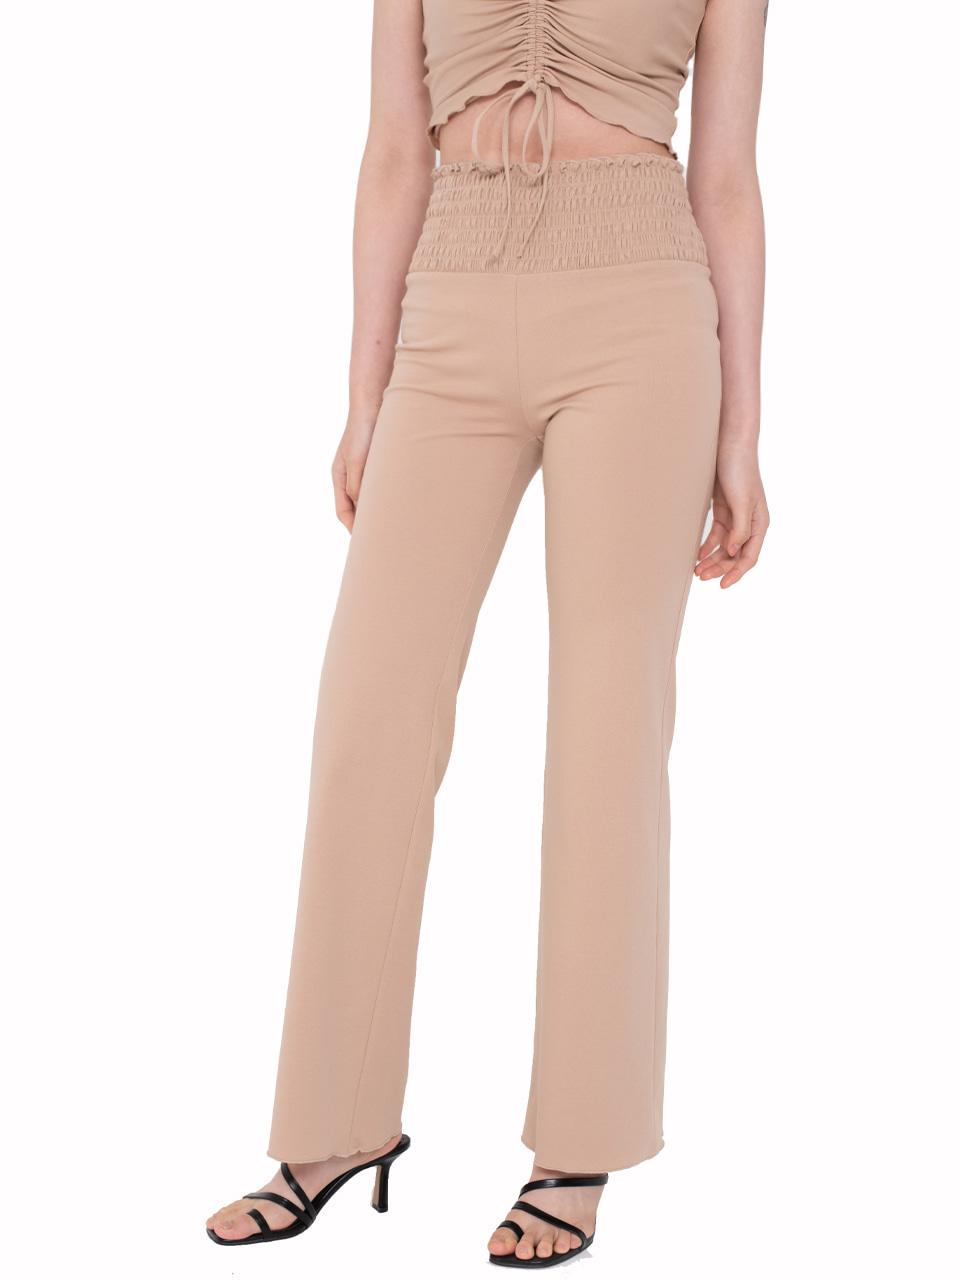 Ruched Summer Pants TAN